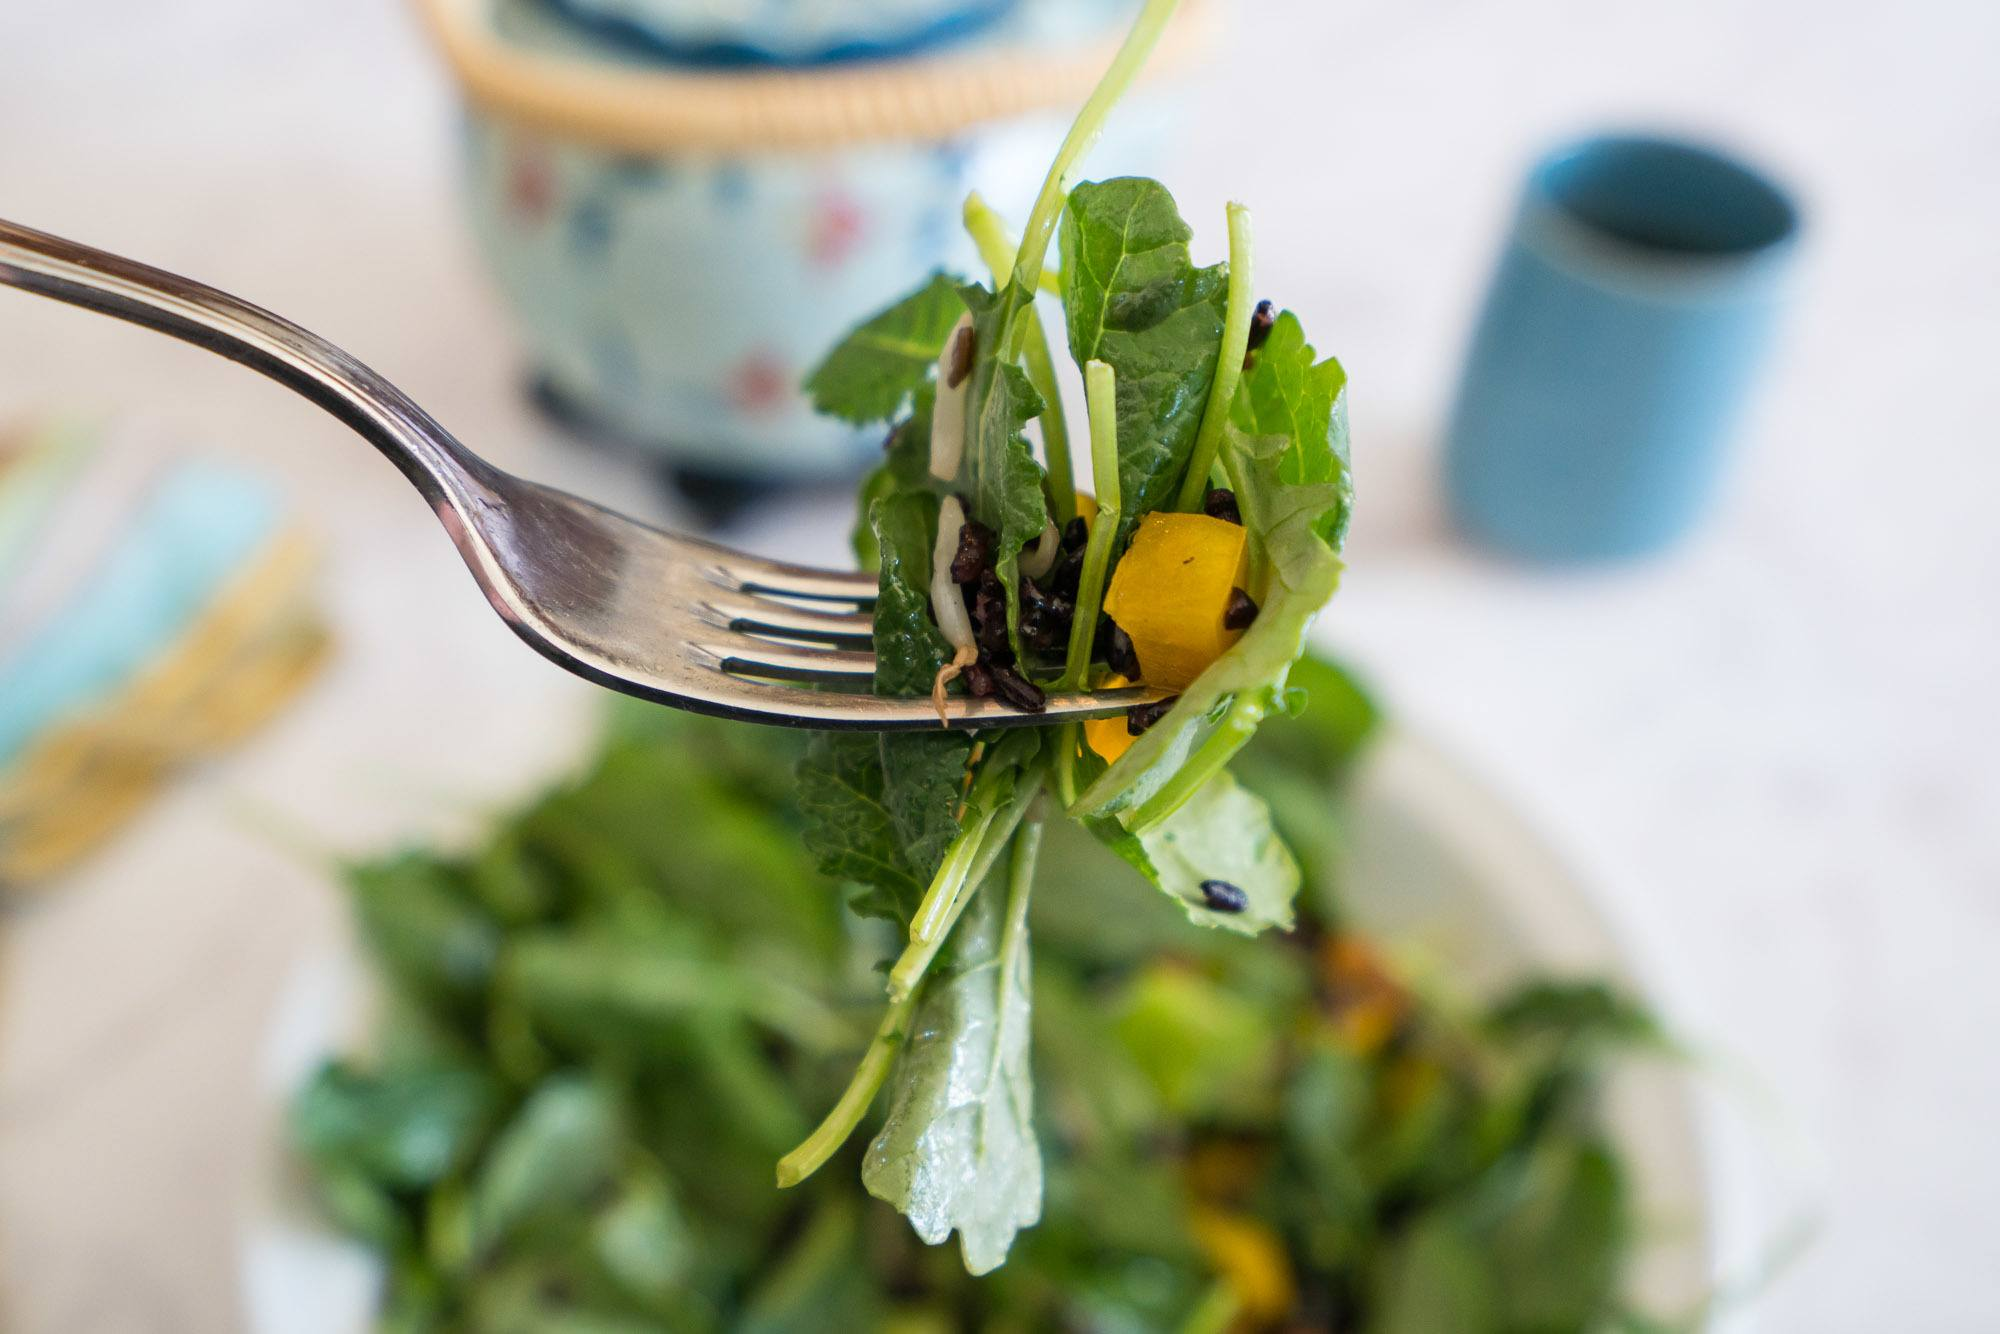 Eat a healthy lunch by having Farmer's Fix salads delivered once a week.